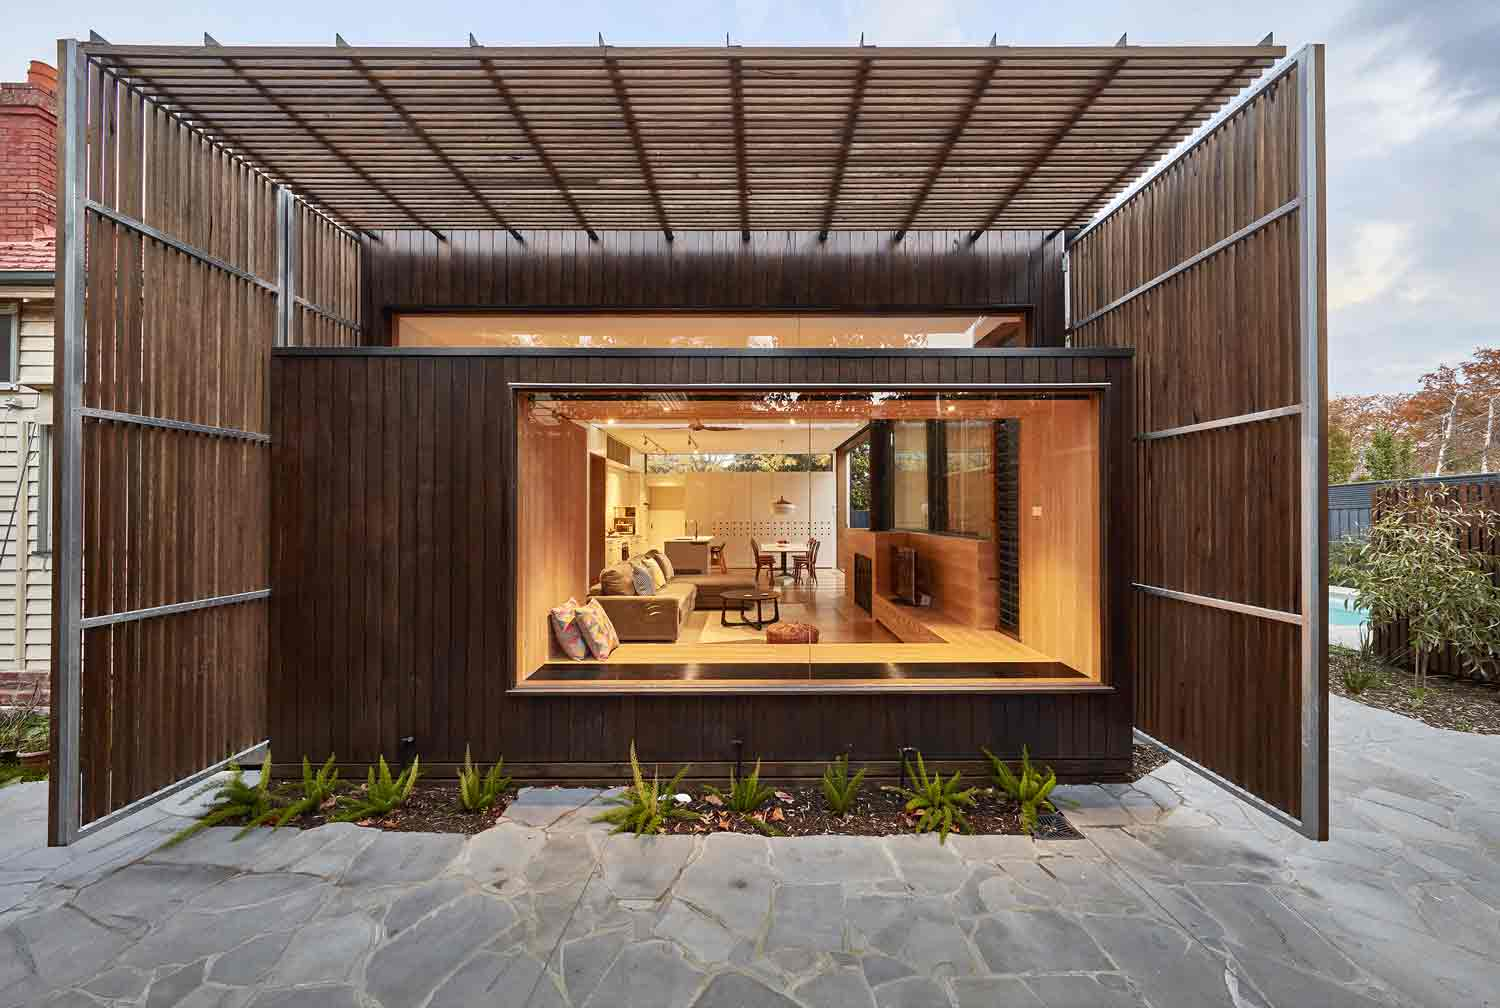 screen–house–camberwell–renovation–by-warc-studio-architects-53.jpg